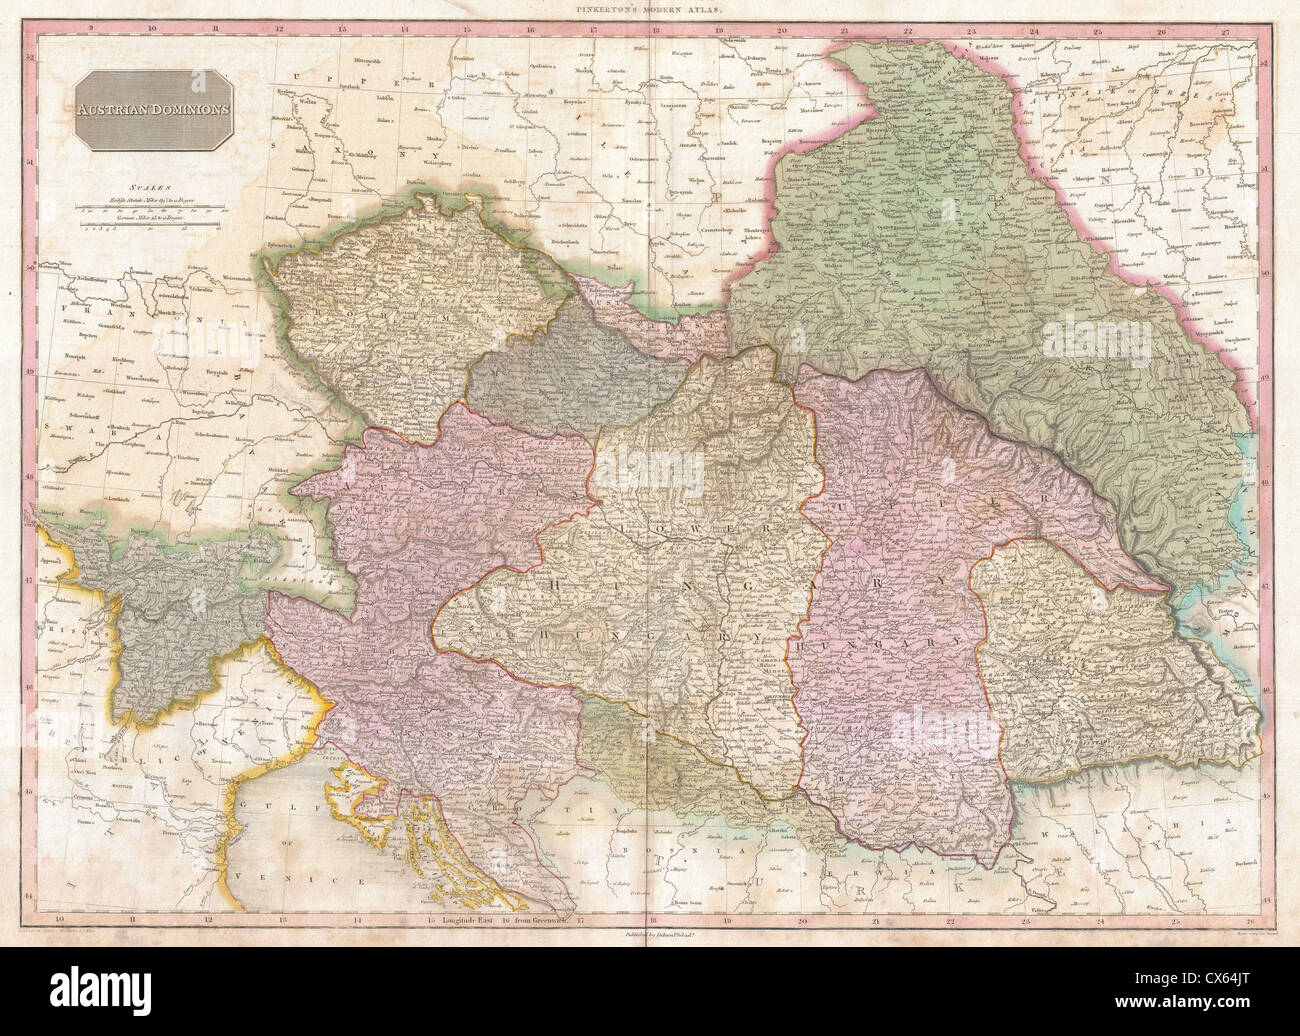 1818 Pinkerton Map of the Austrian Empire - Stock Image